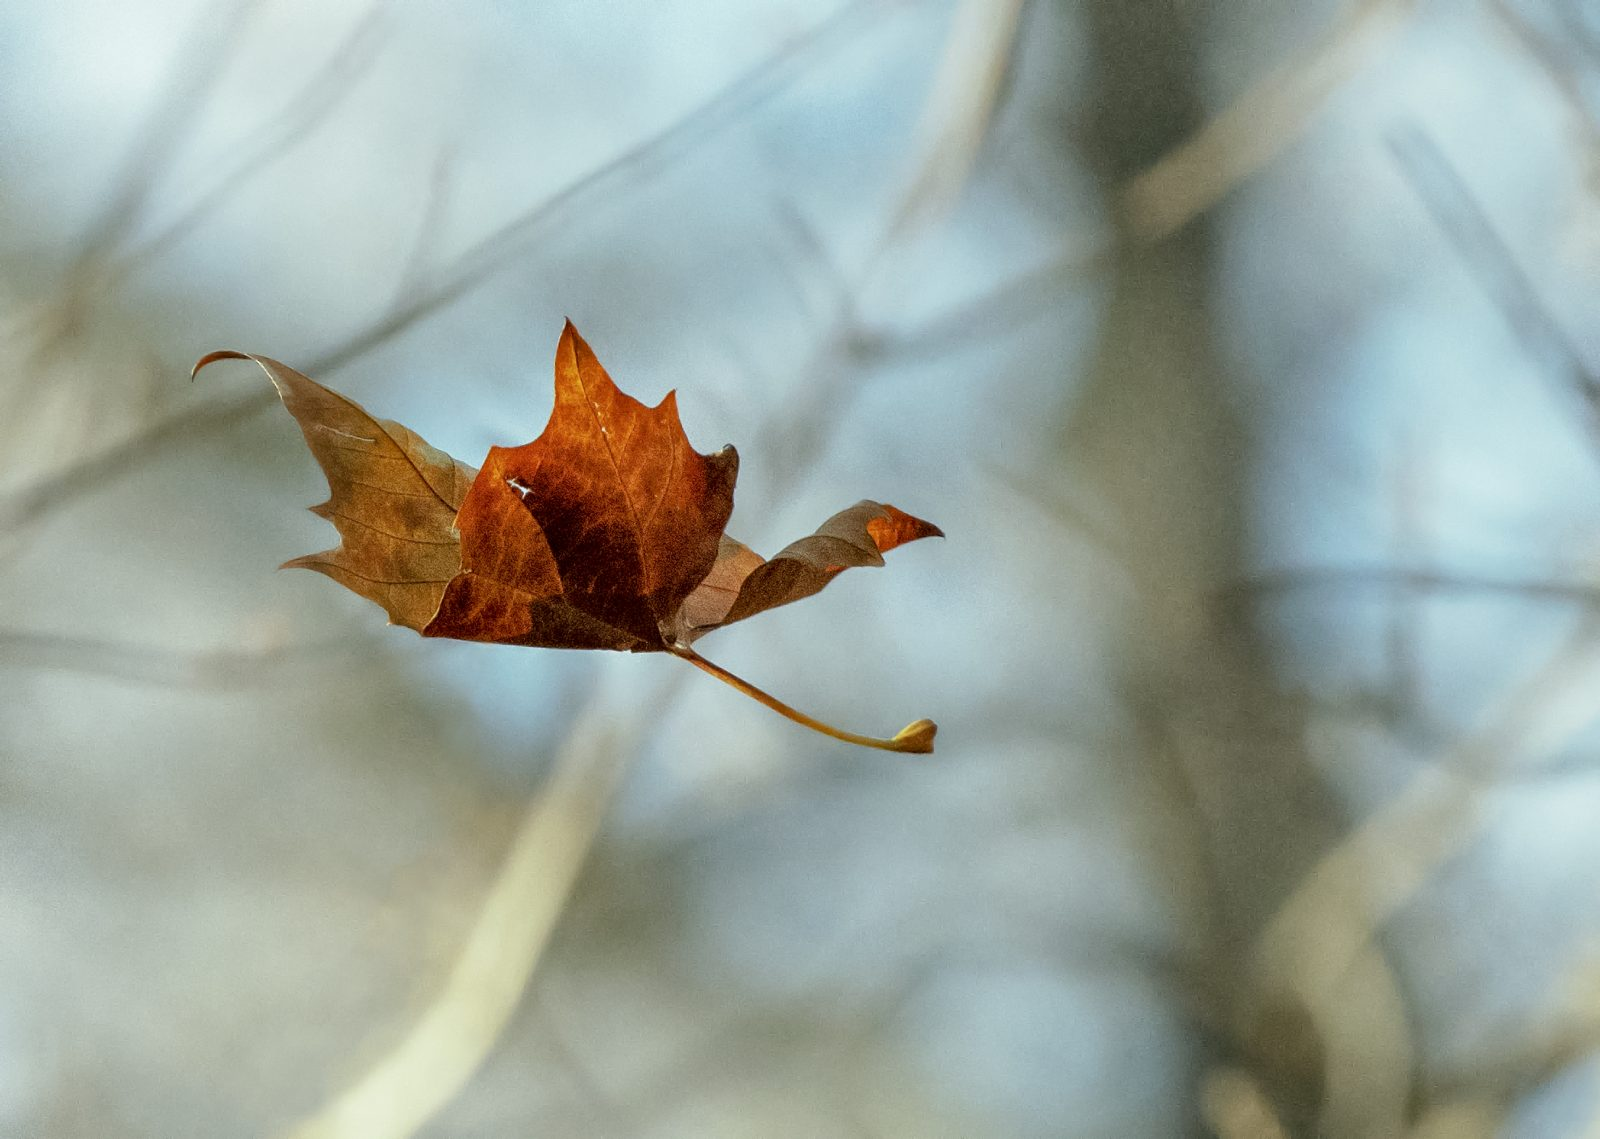 Making Beleaf….a falling leaf captured in time with a camera click